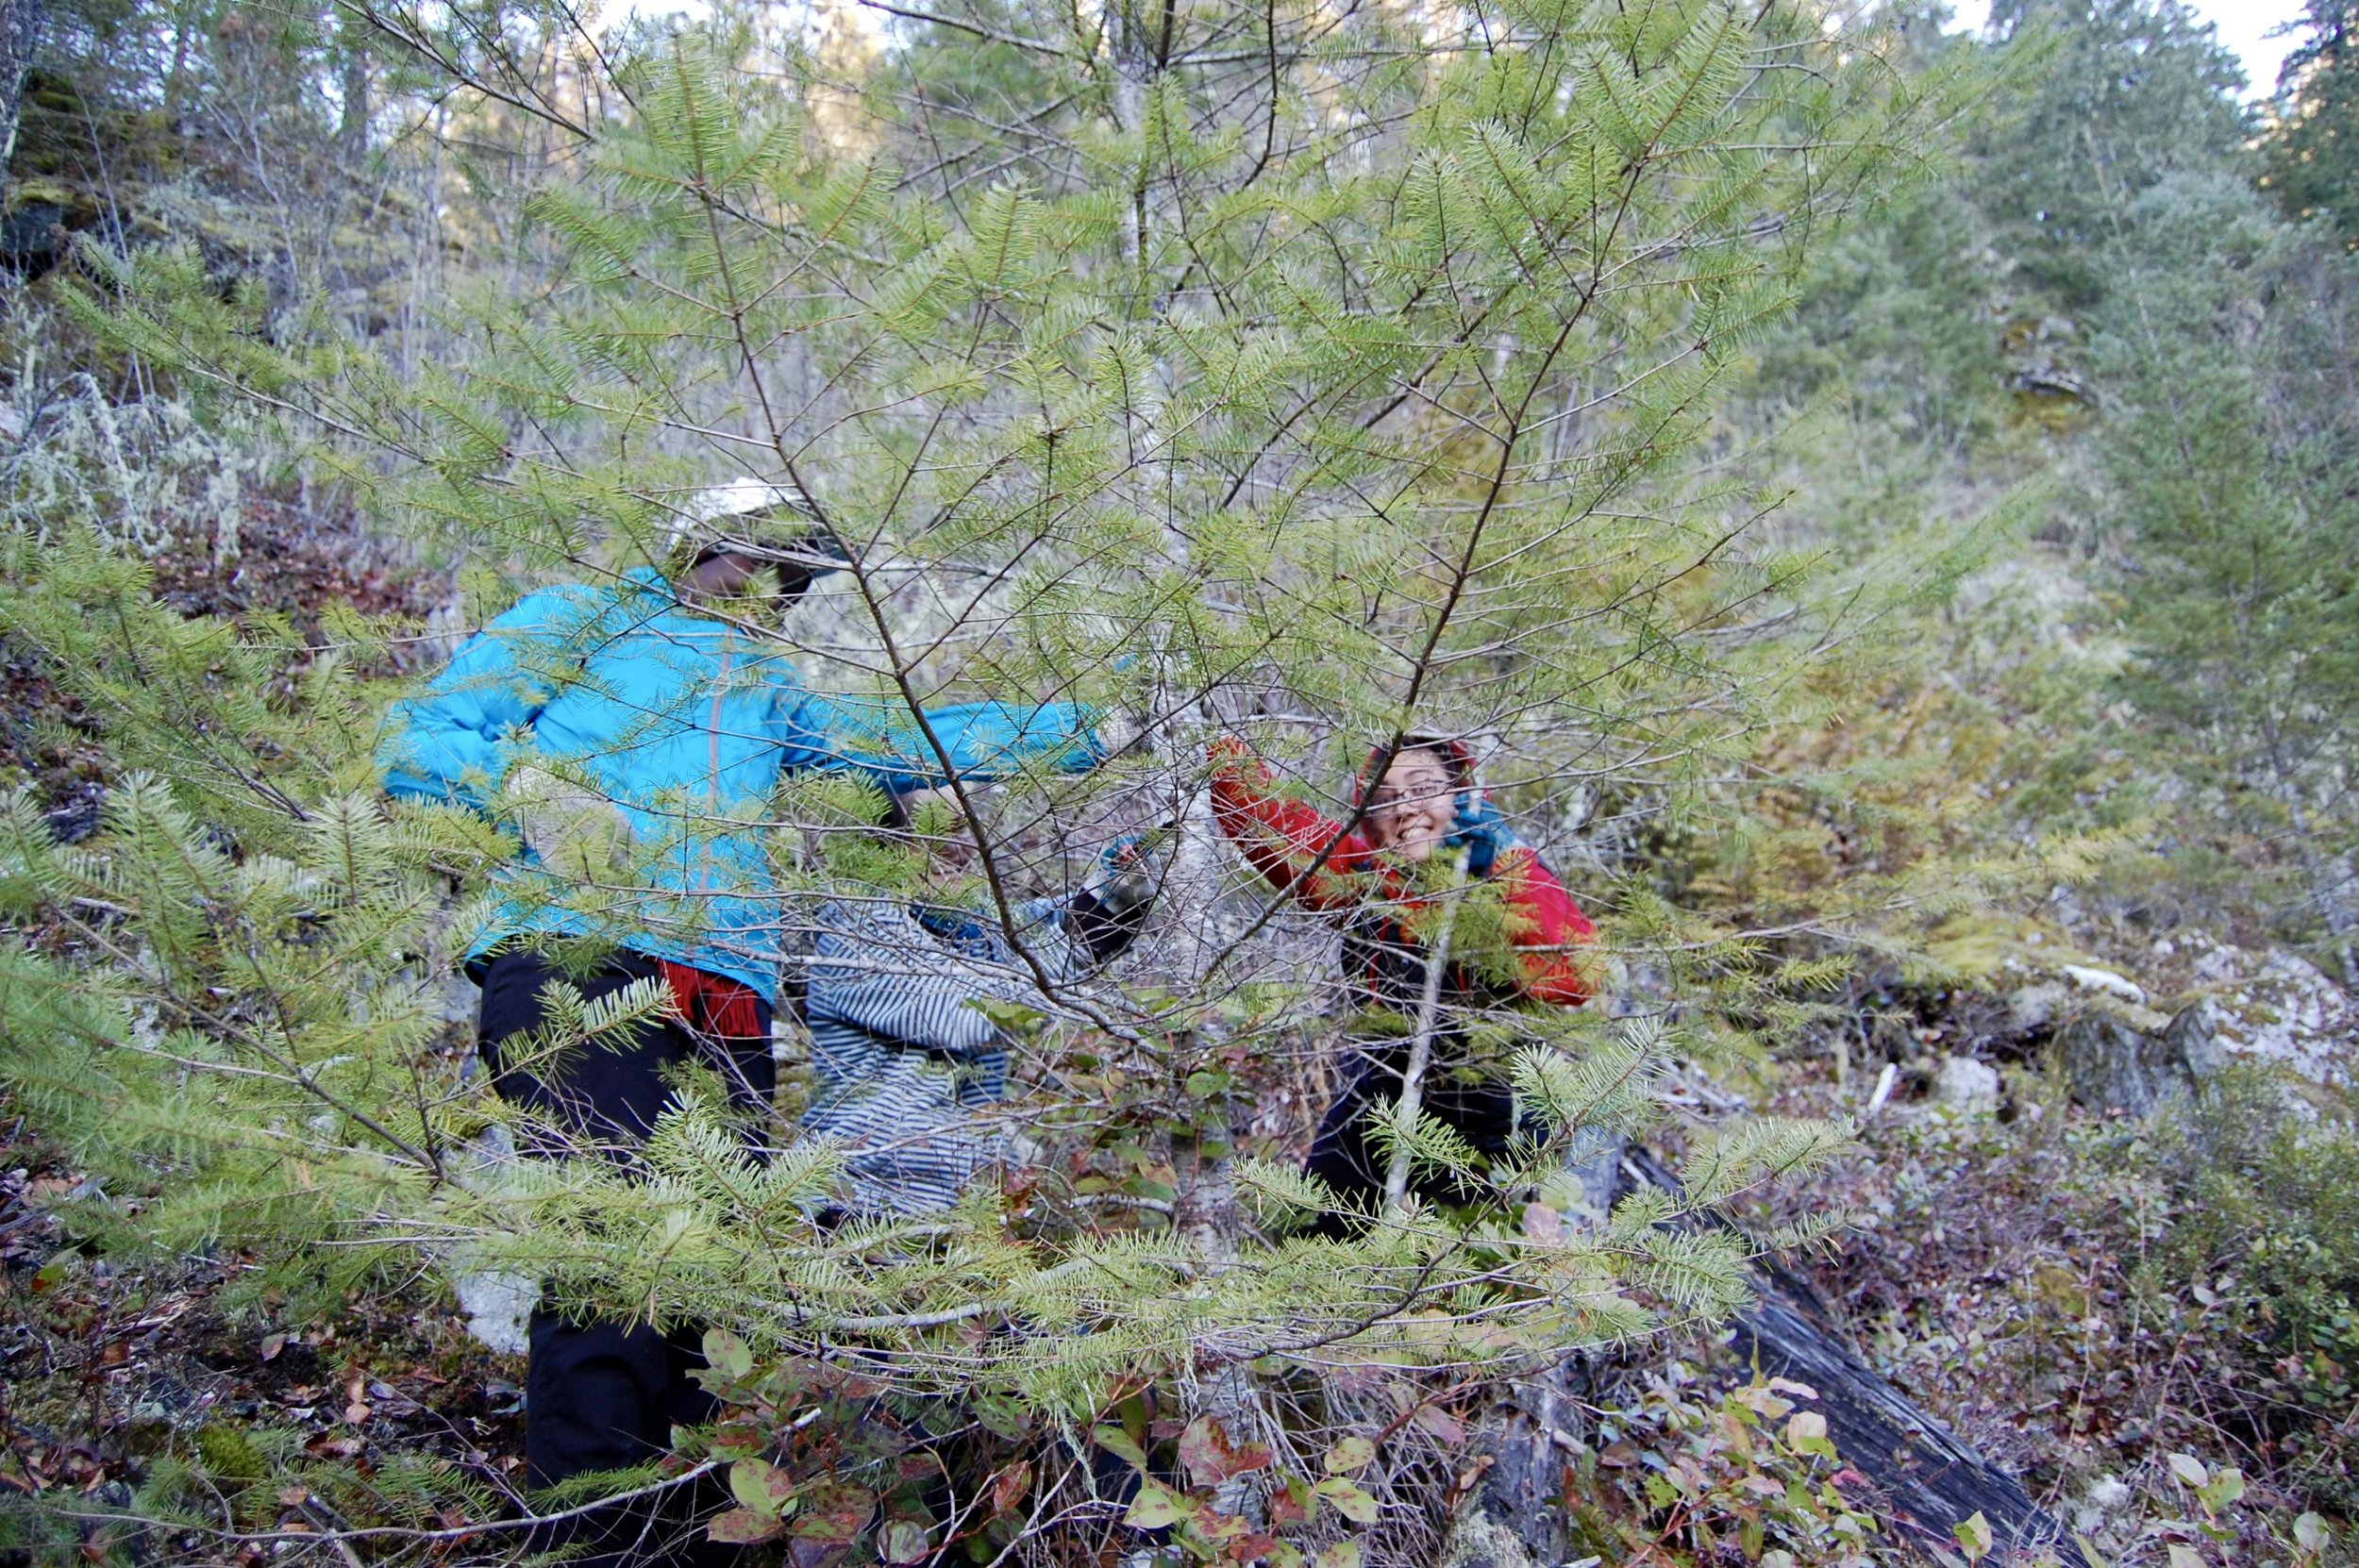 Some of the novitiate bundled up warmly and went bushwacking on the upper reaches of our grounds to procure a Christmas tree for our community room.